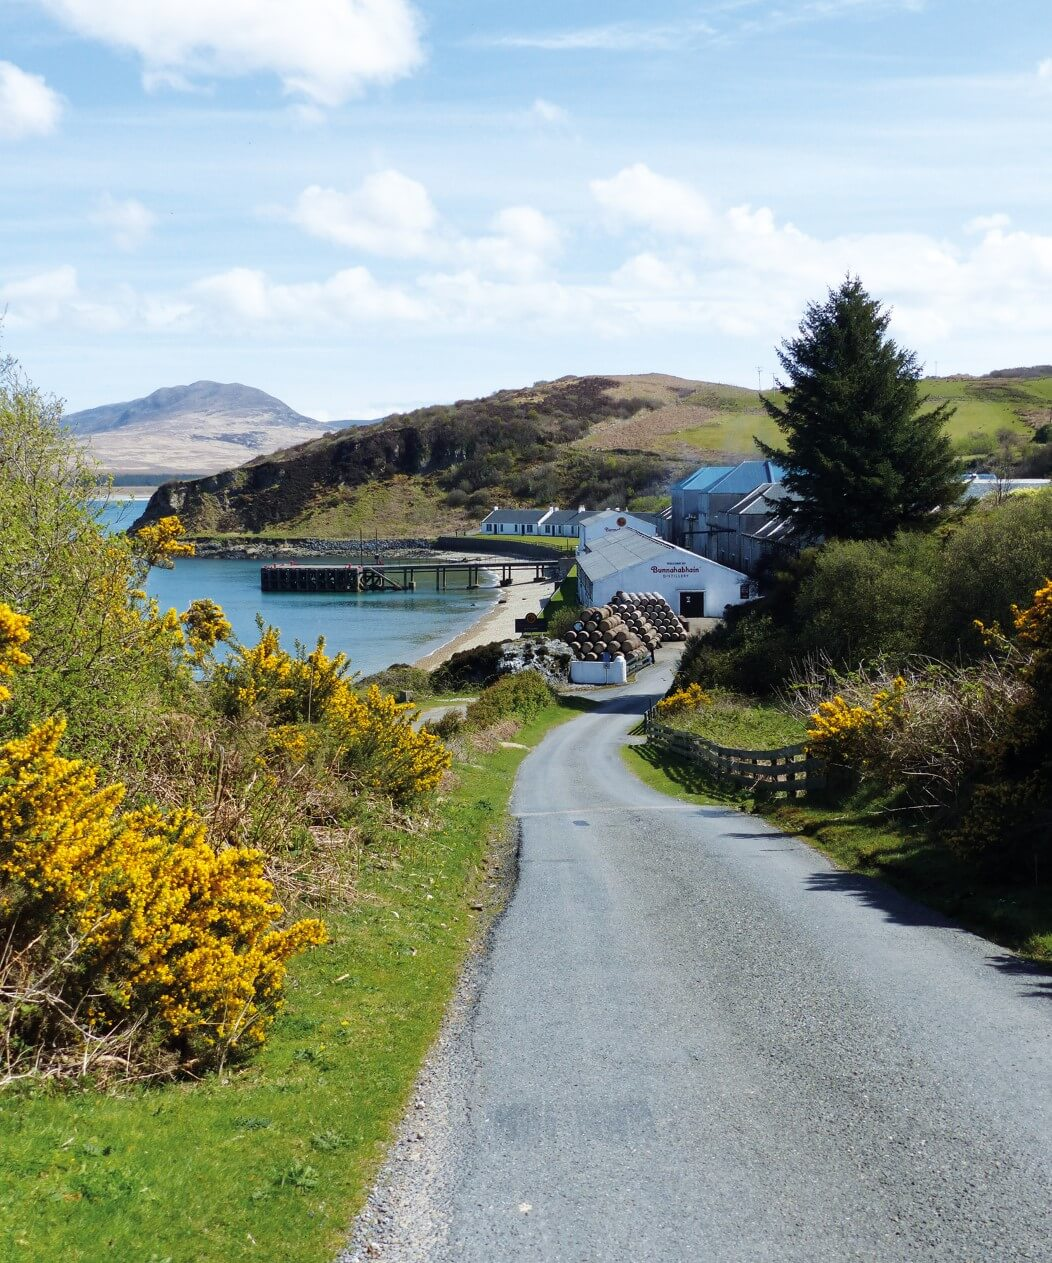 The road leading down to Bunnahabhain